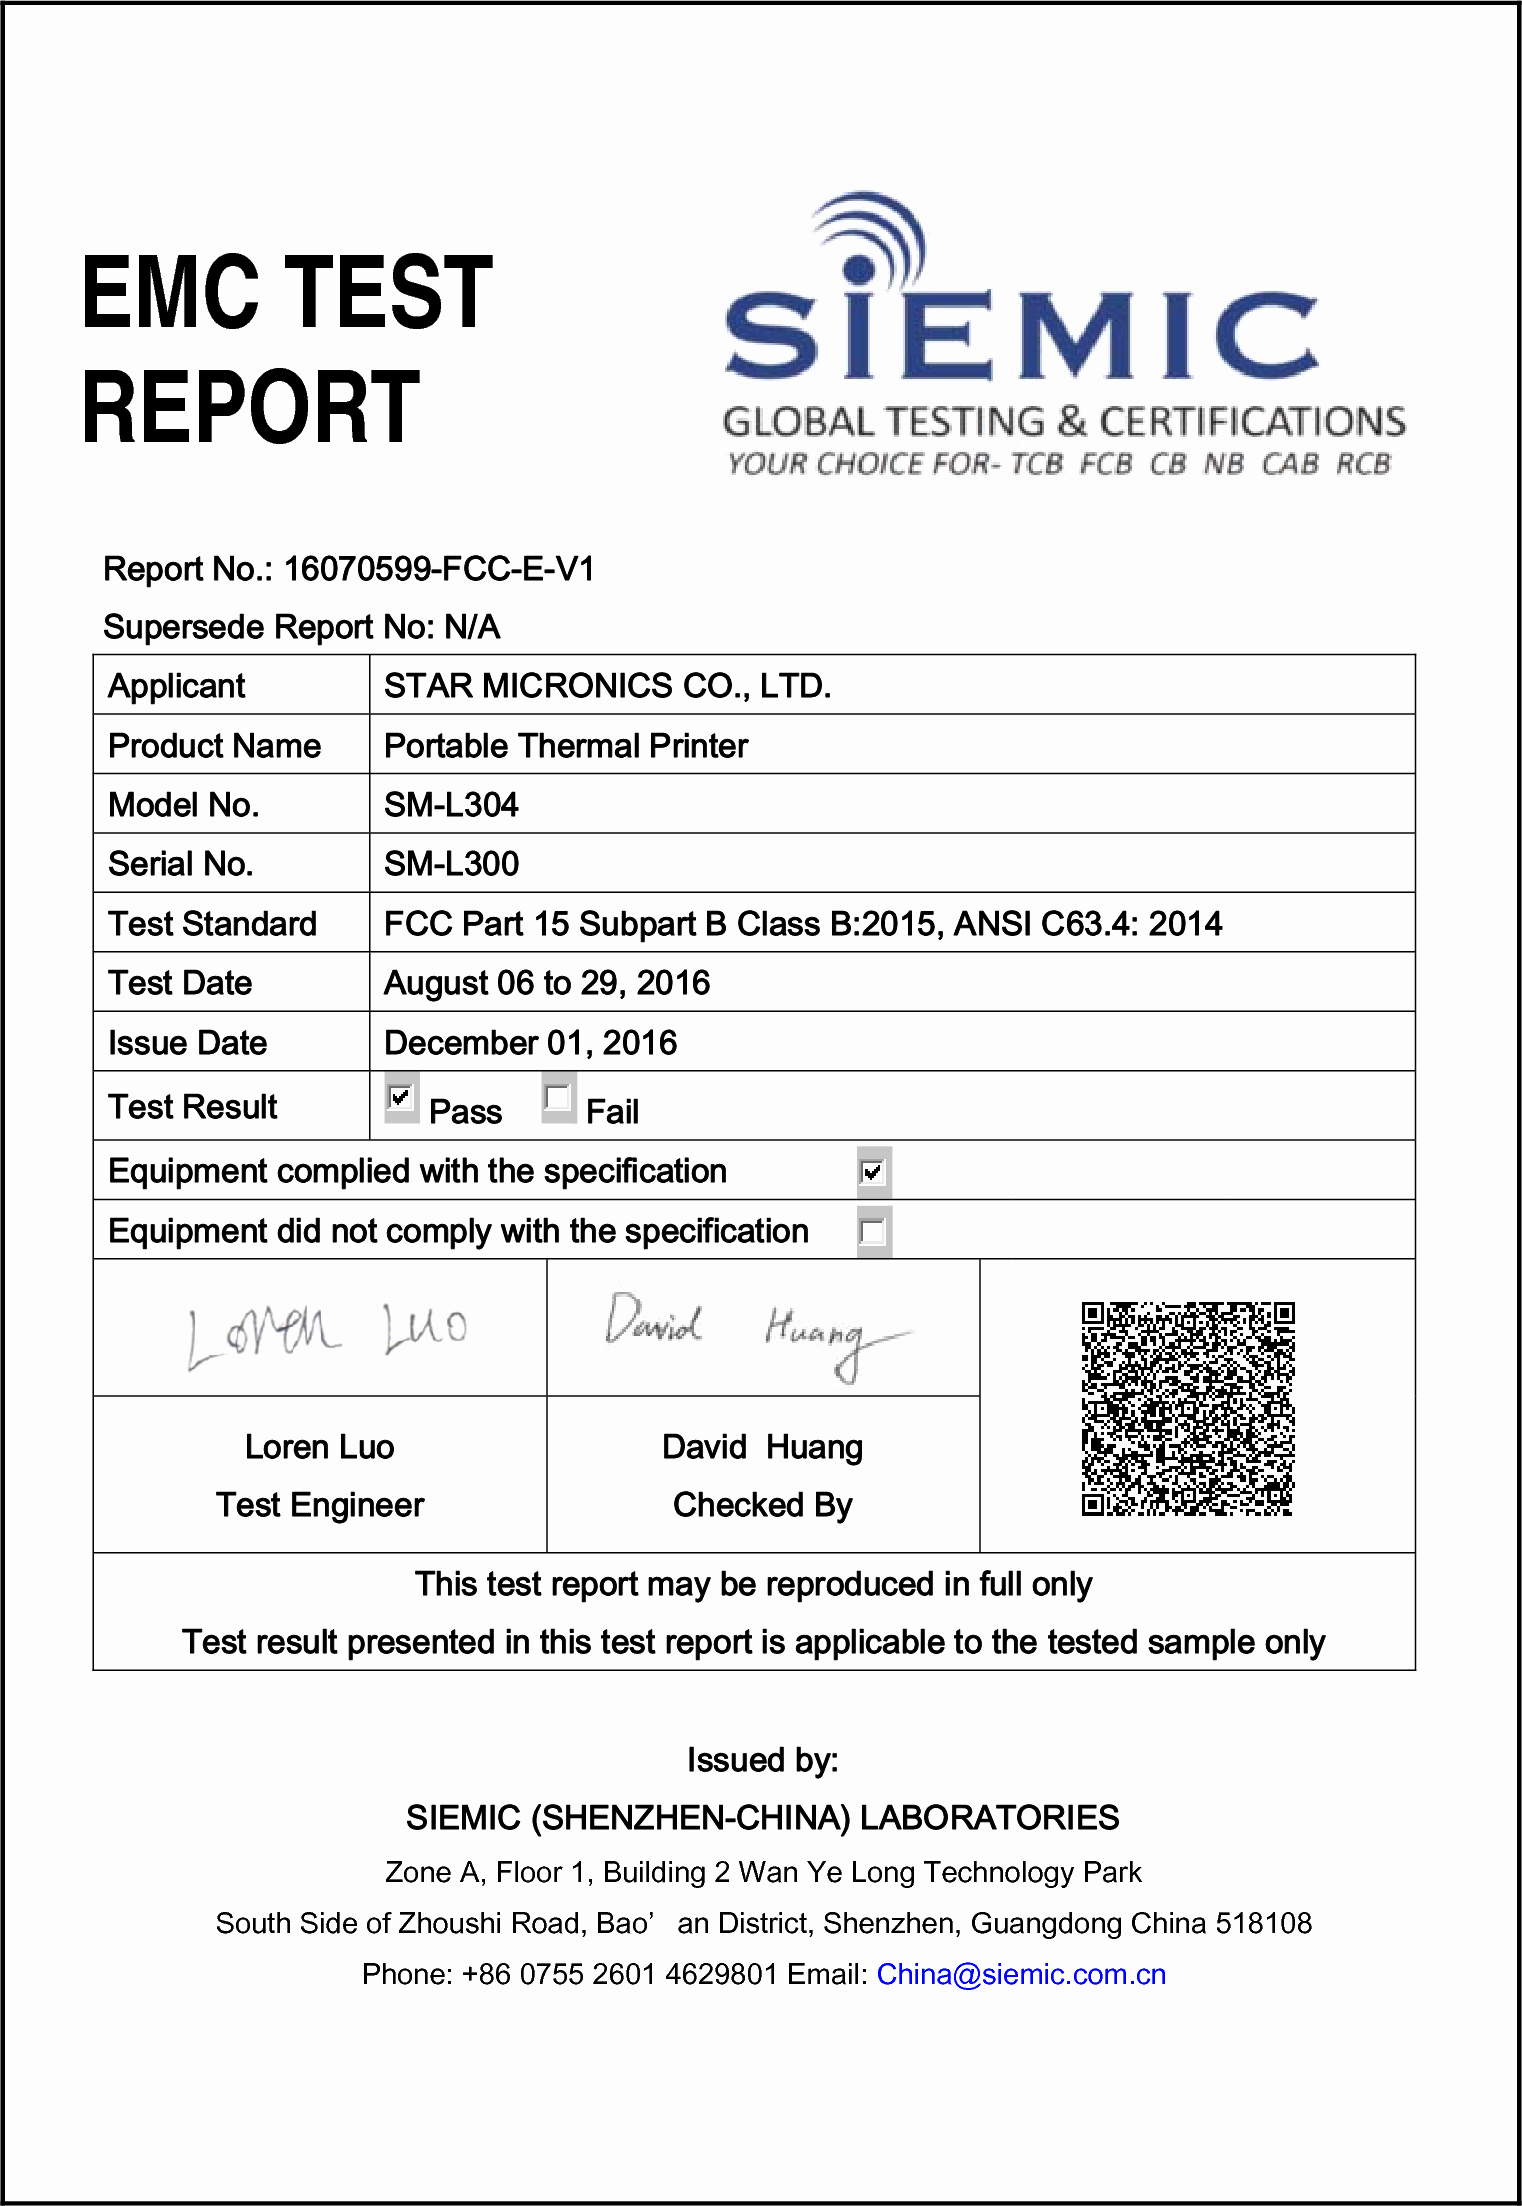 Engineering Test Report Template Inspirational Sm L300 Portable thermal Printer Test Report Fcc